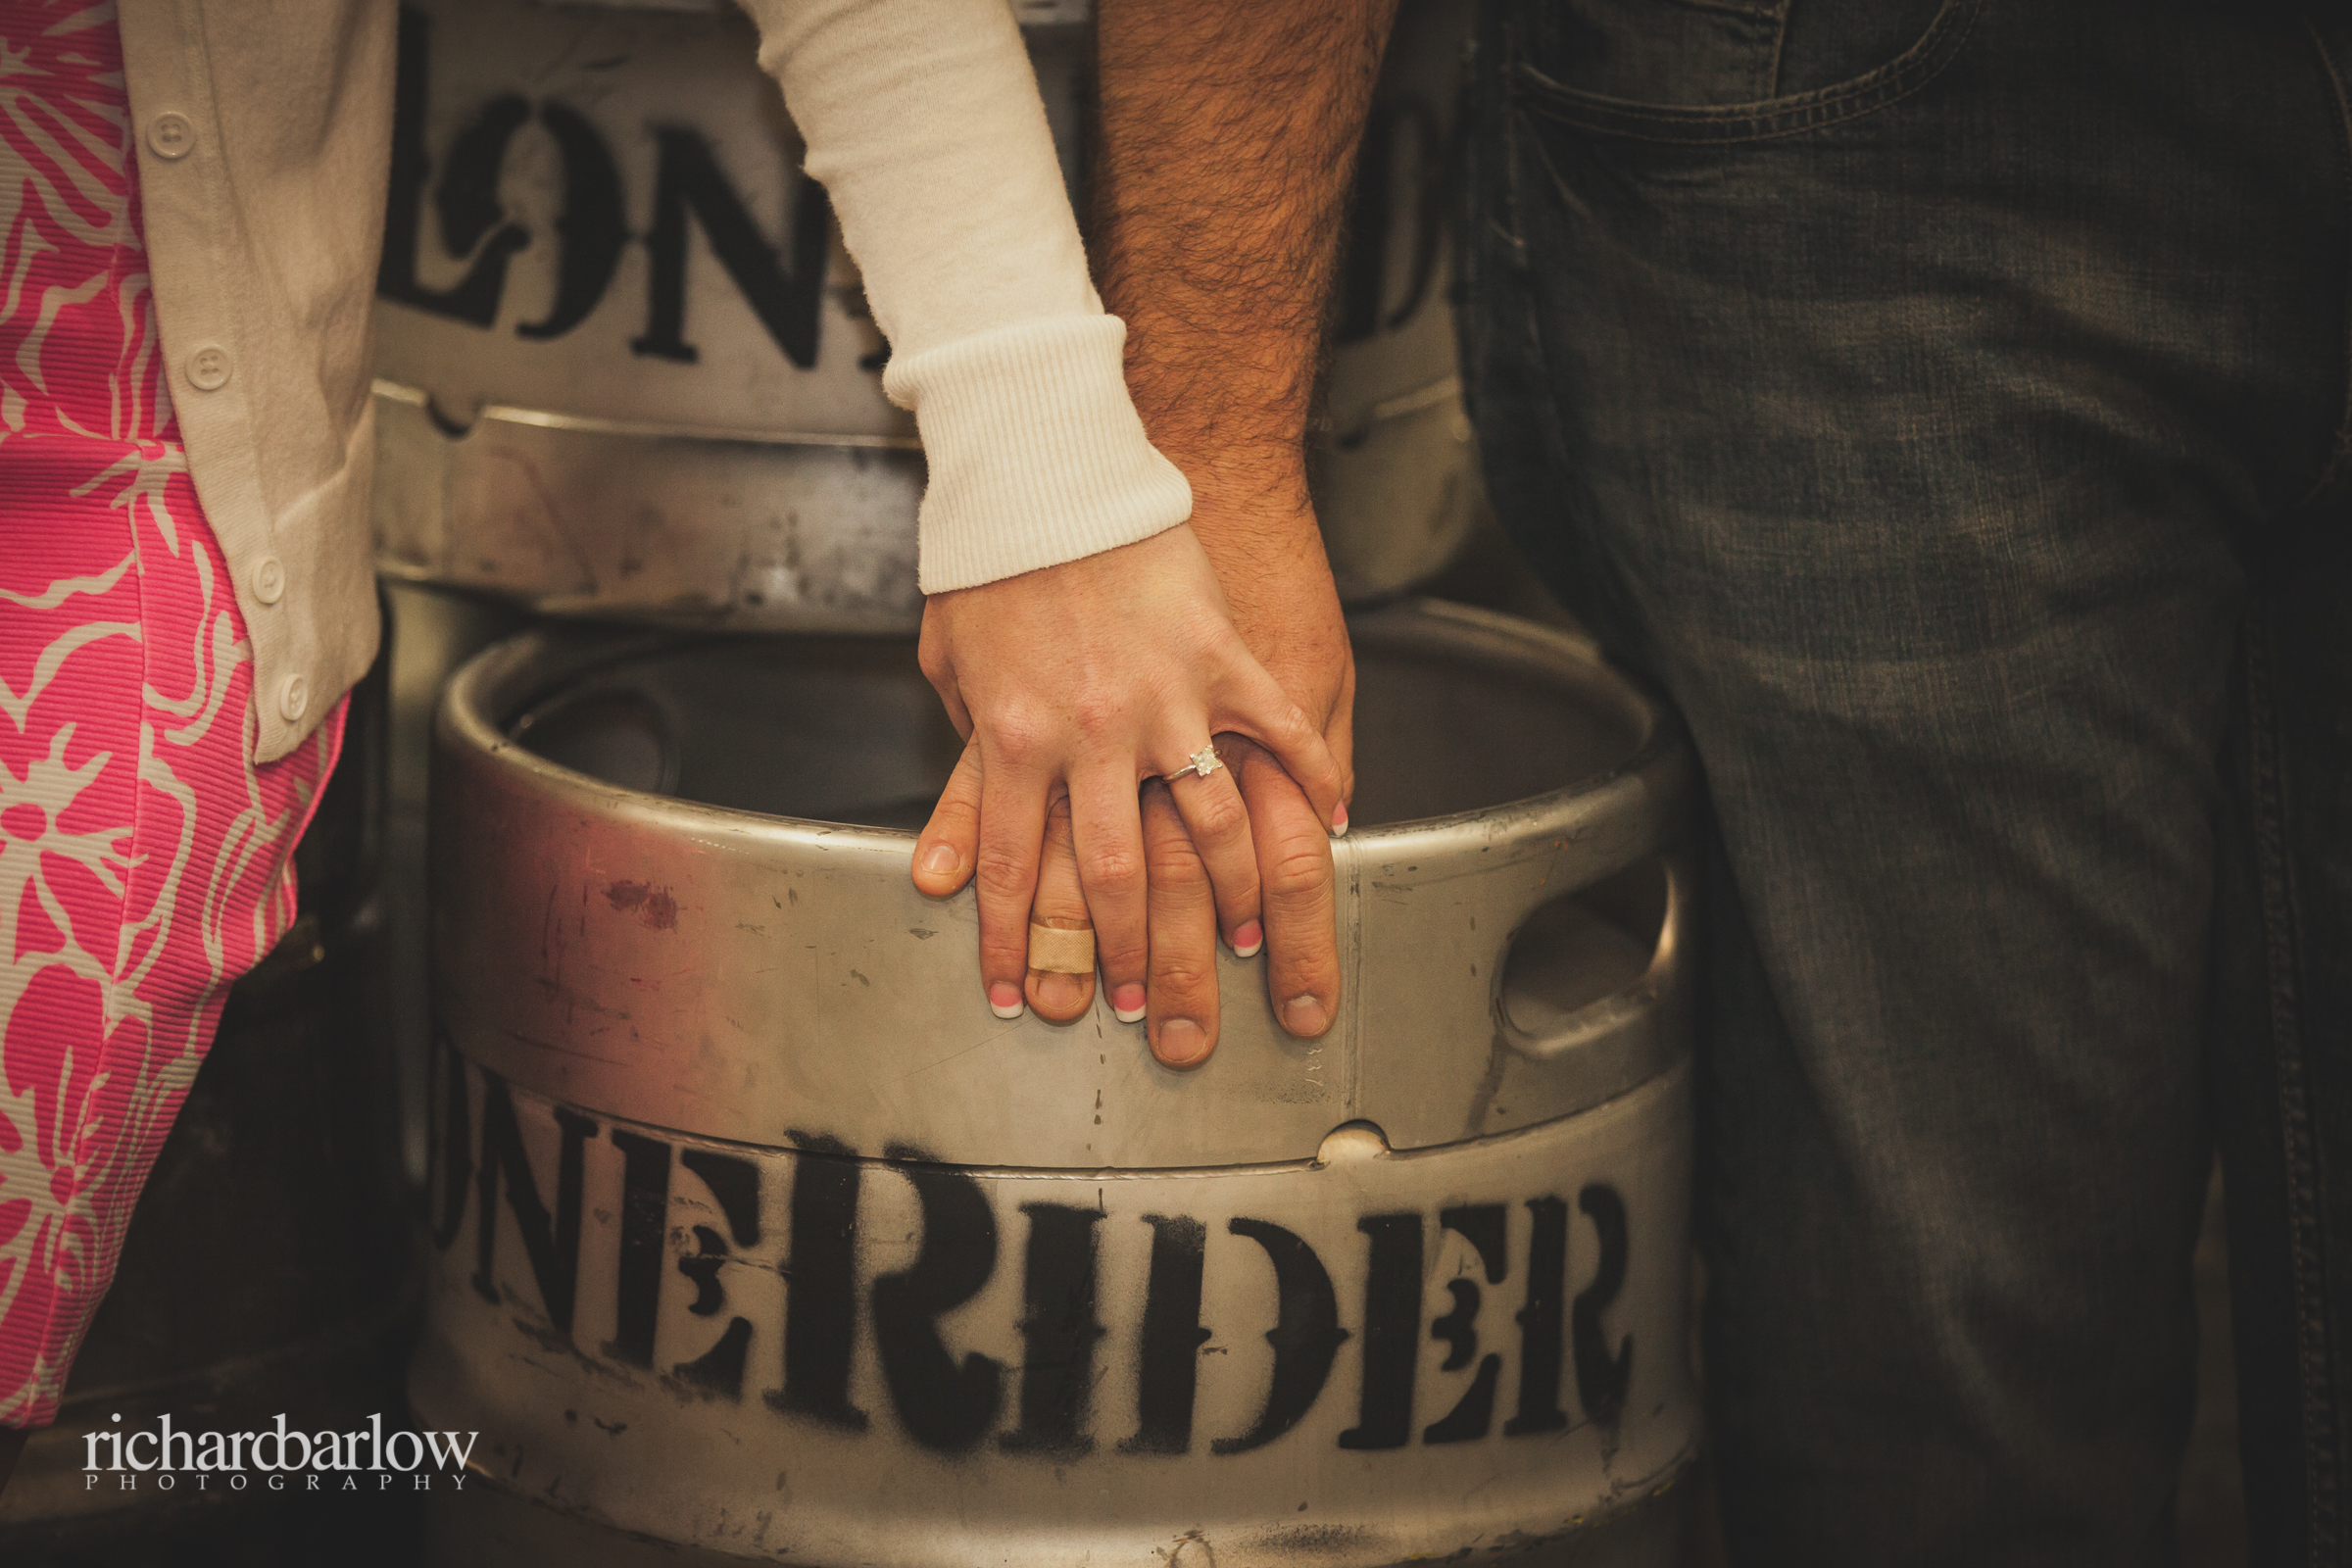 richard barlow photography - Jason and Karen Engagement Session NC State-29.jpg